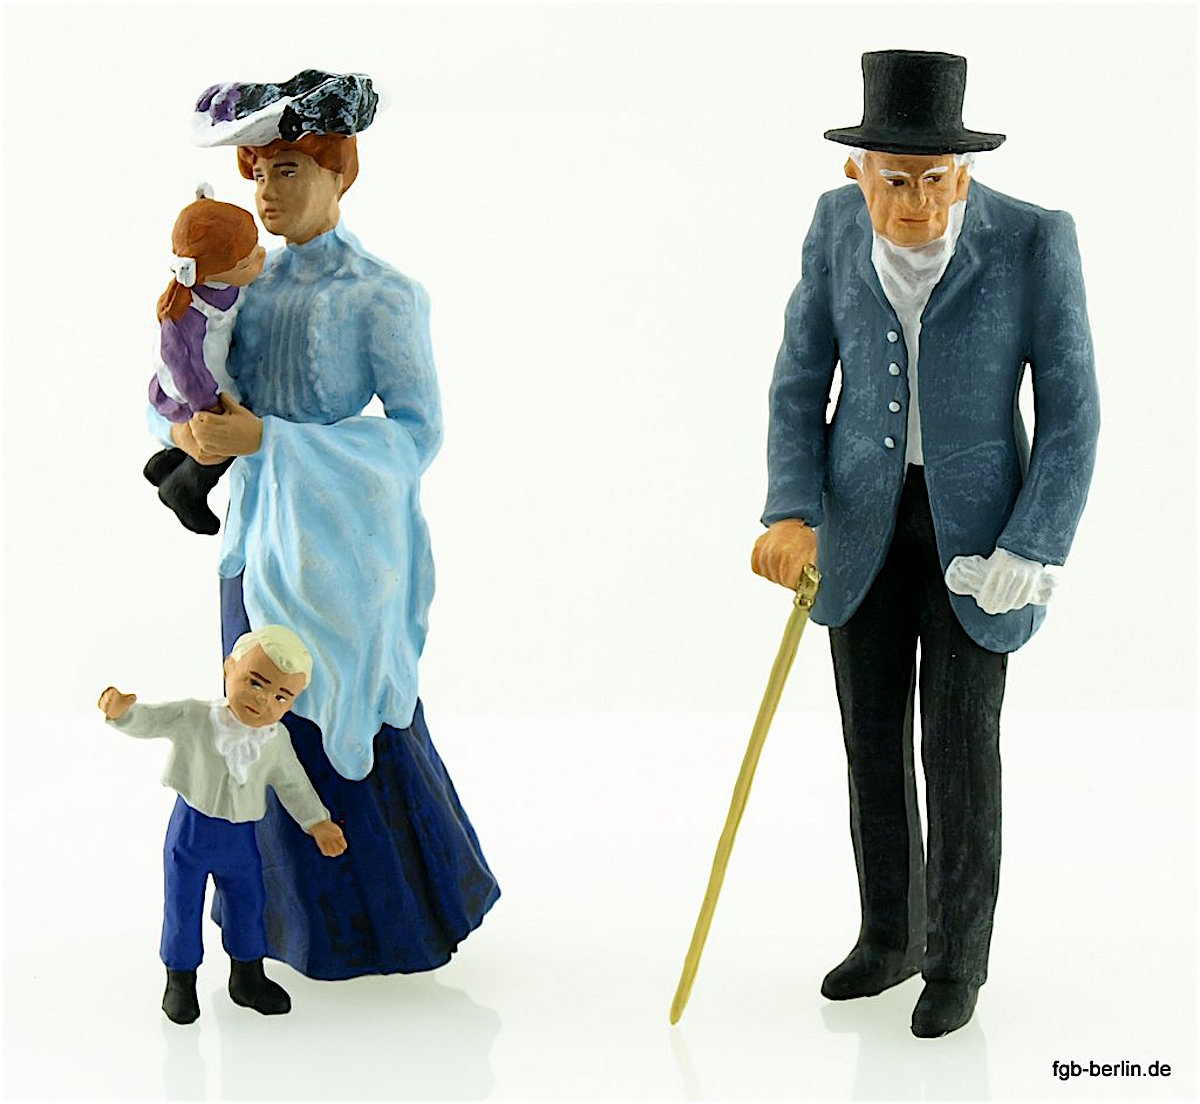 Alter Herr, Dame mit Kindern (Older gentleman, lady with children)